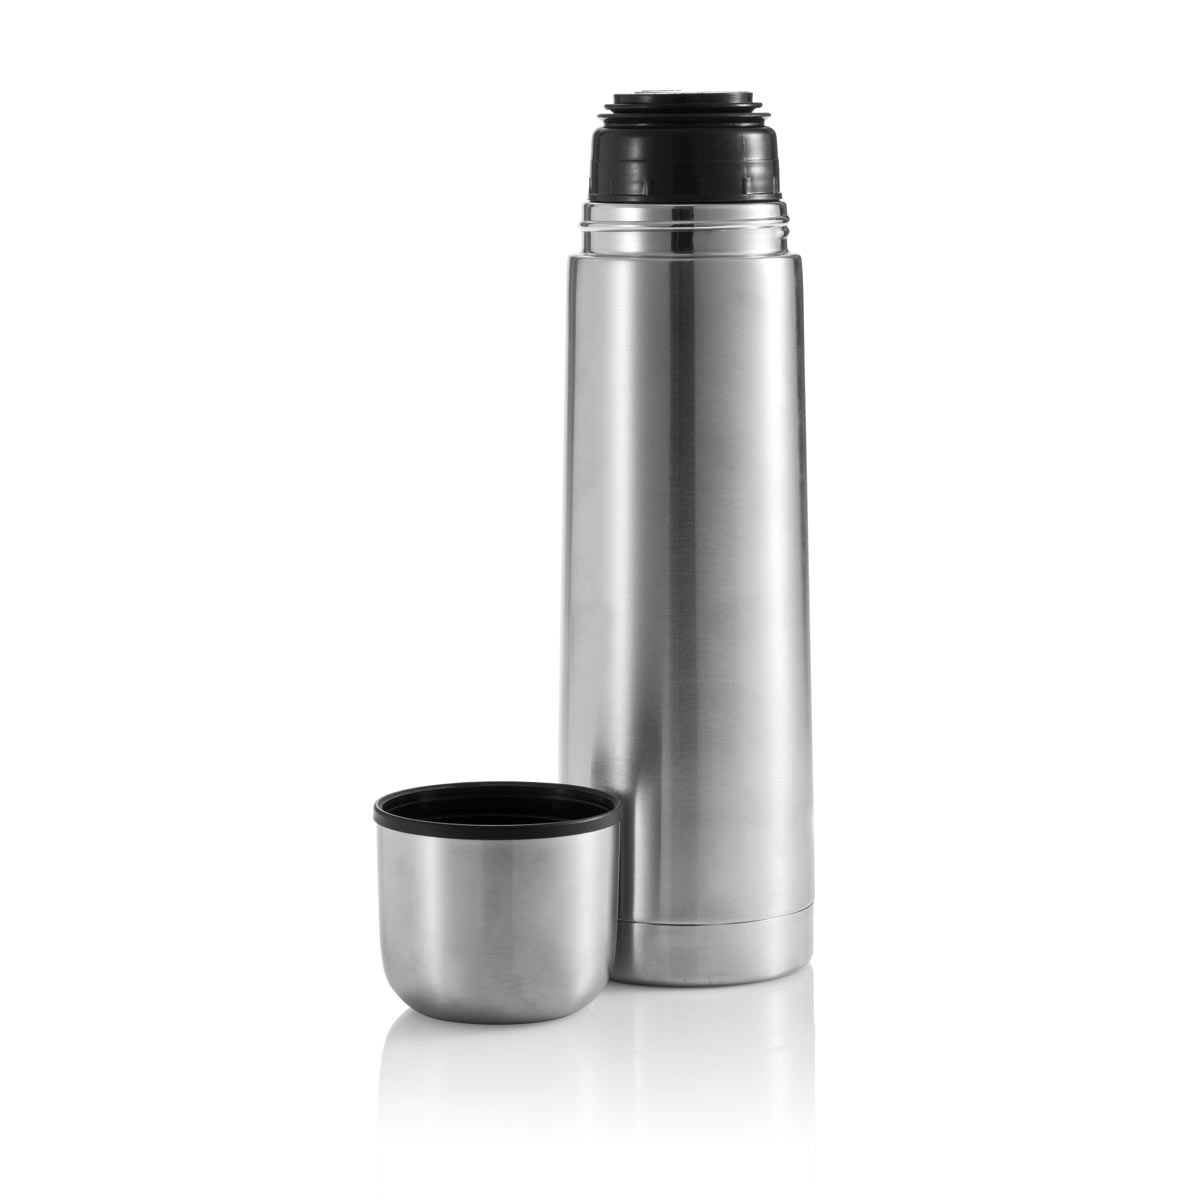 gourde thermos publicitaire bouteille publicitaire bouteille publicitaire mug inox. Black Bedroom Furniture Sets. Home Design Ideas